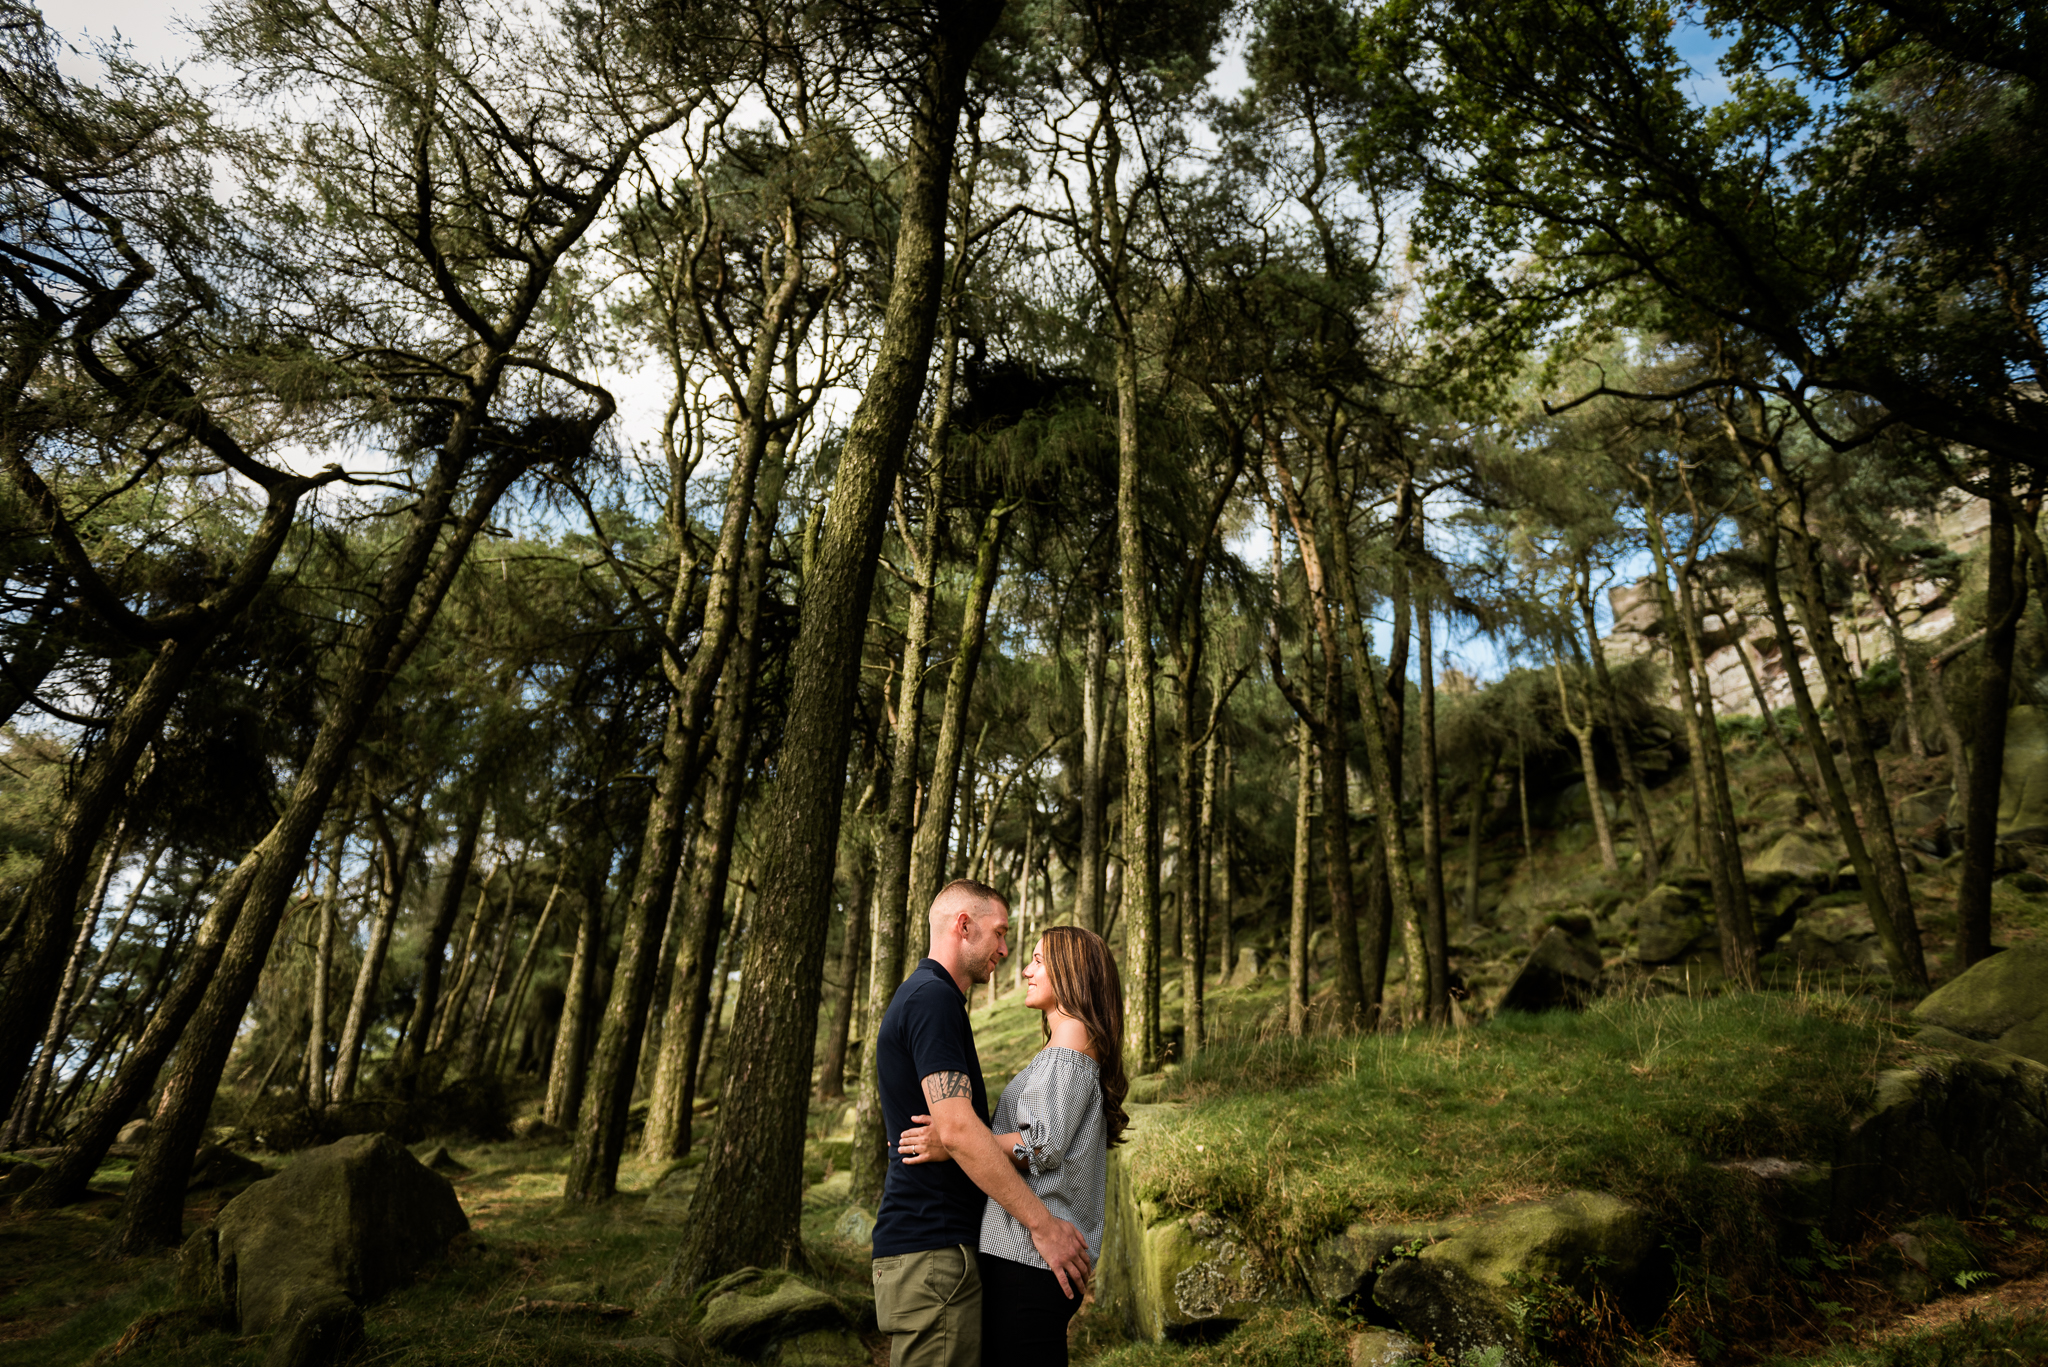 Pre-Wedding Family Photography, The Roaches, Peak District, Staffordshire Moorlands - Jenny Harper-4.jpg